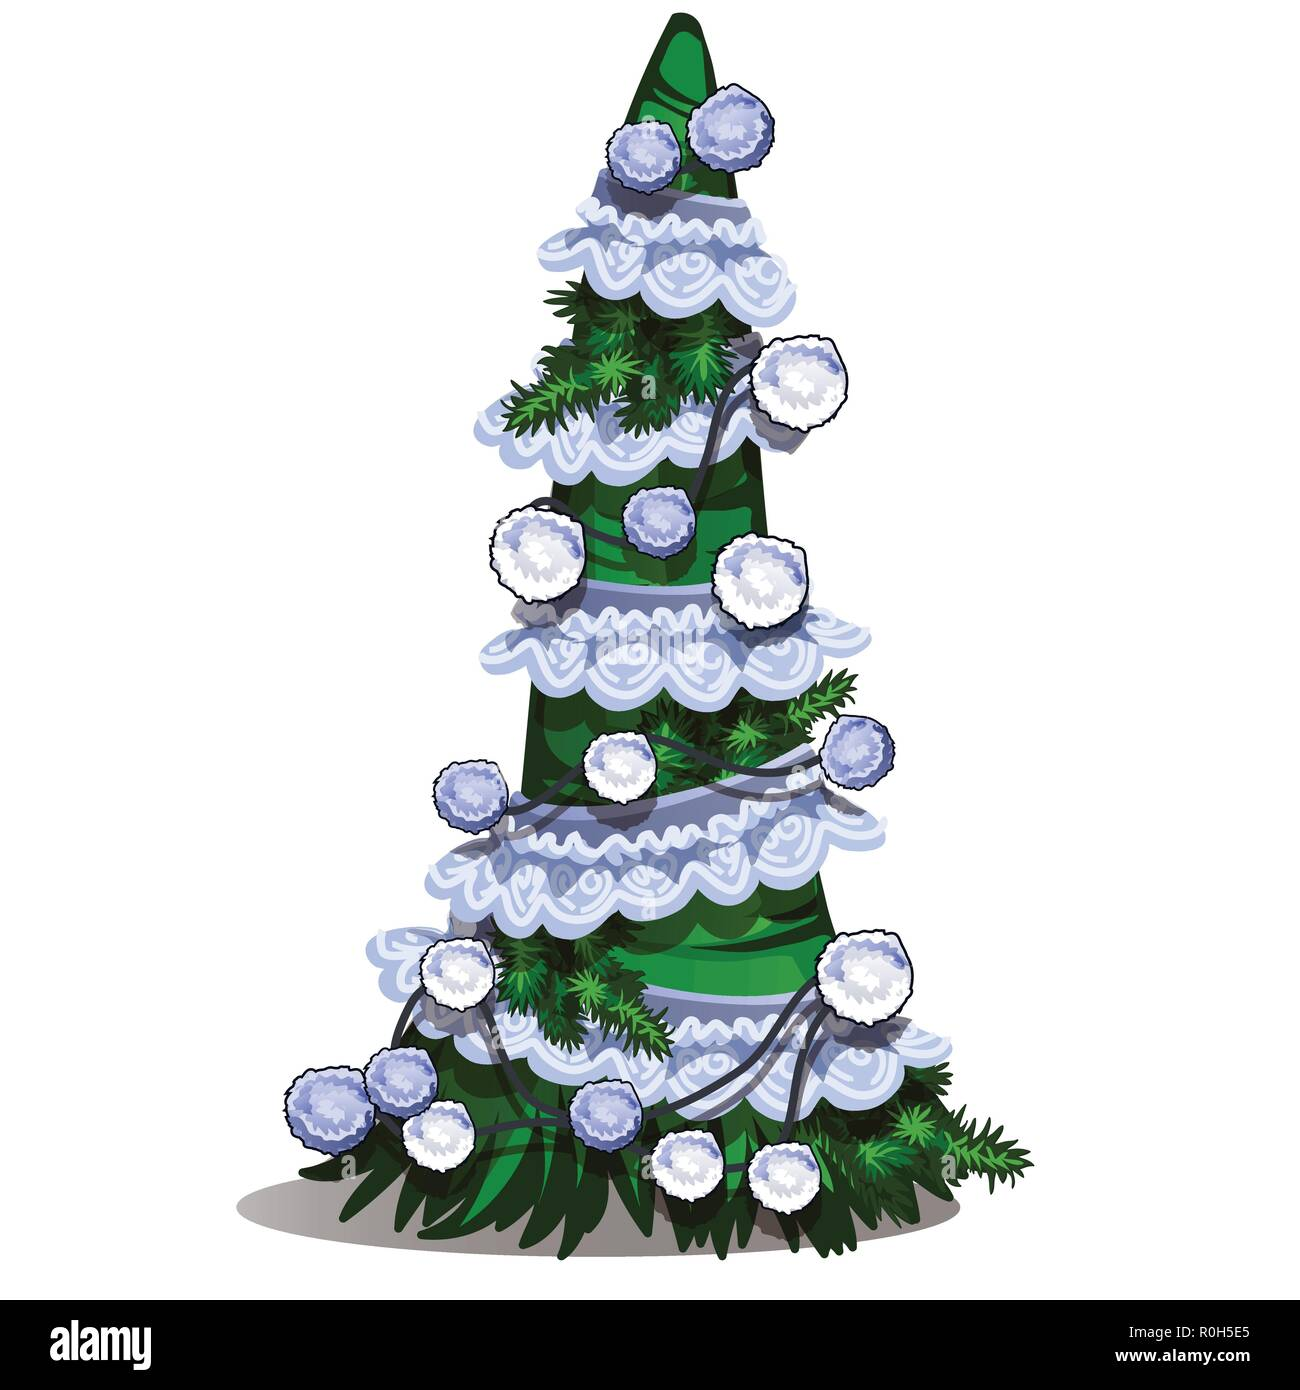 Cartoon Topiary In The Form Of A Cone Christmas Tree With Bauble White Lace Ribbon And Pompons Sketch For Greeting Card Festive Poster Party Invitation Attribute Of Christmas And New Year Vector